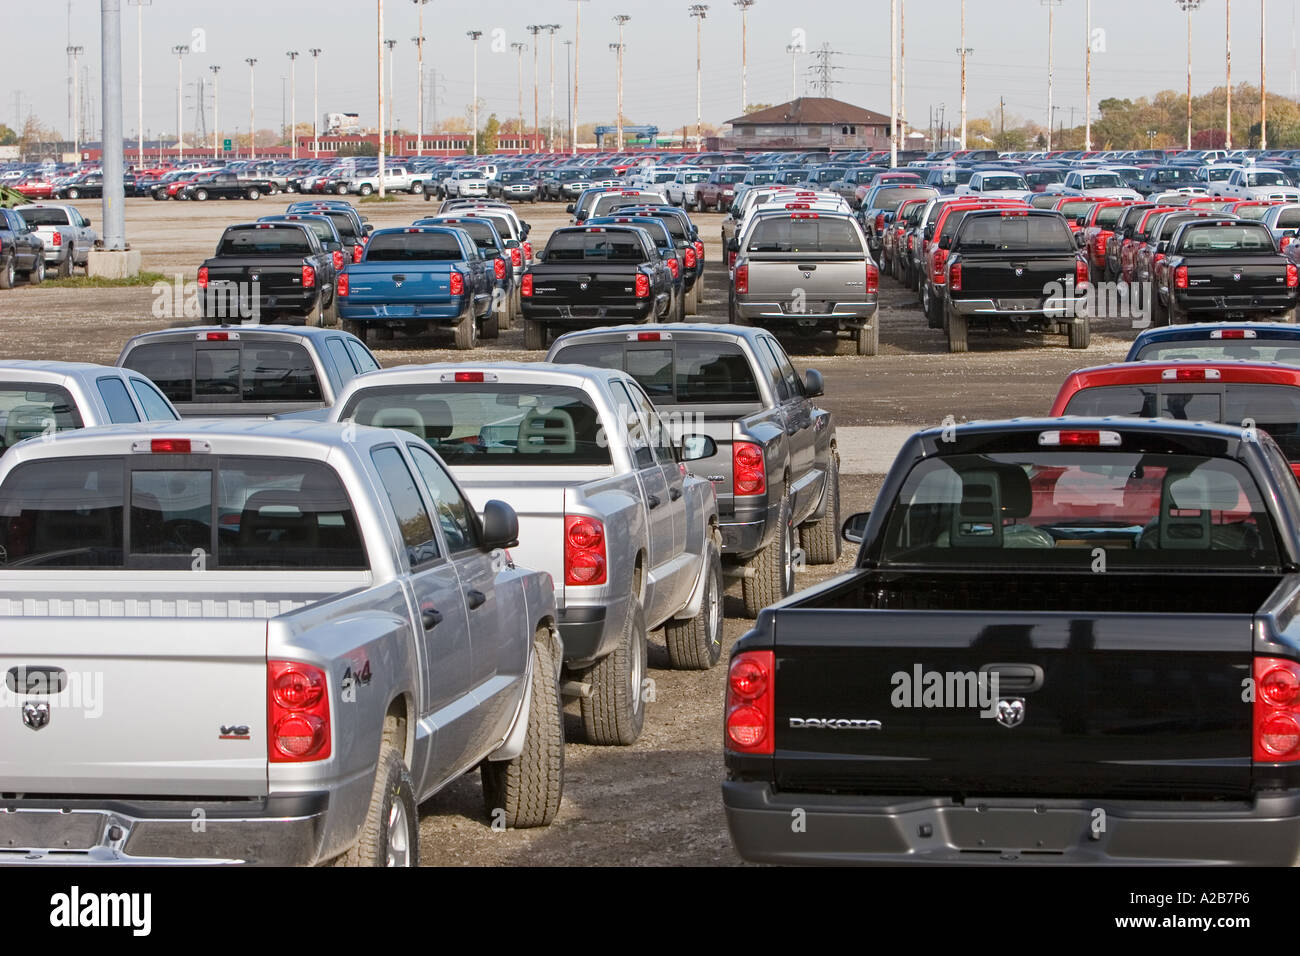 Unsold Cars and Trucks Stock Photo: 5981349 - Alamy